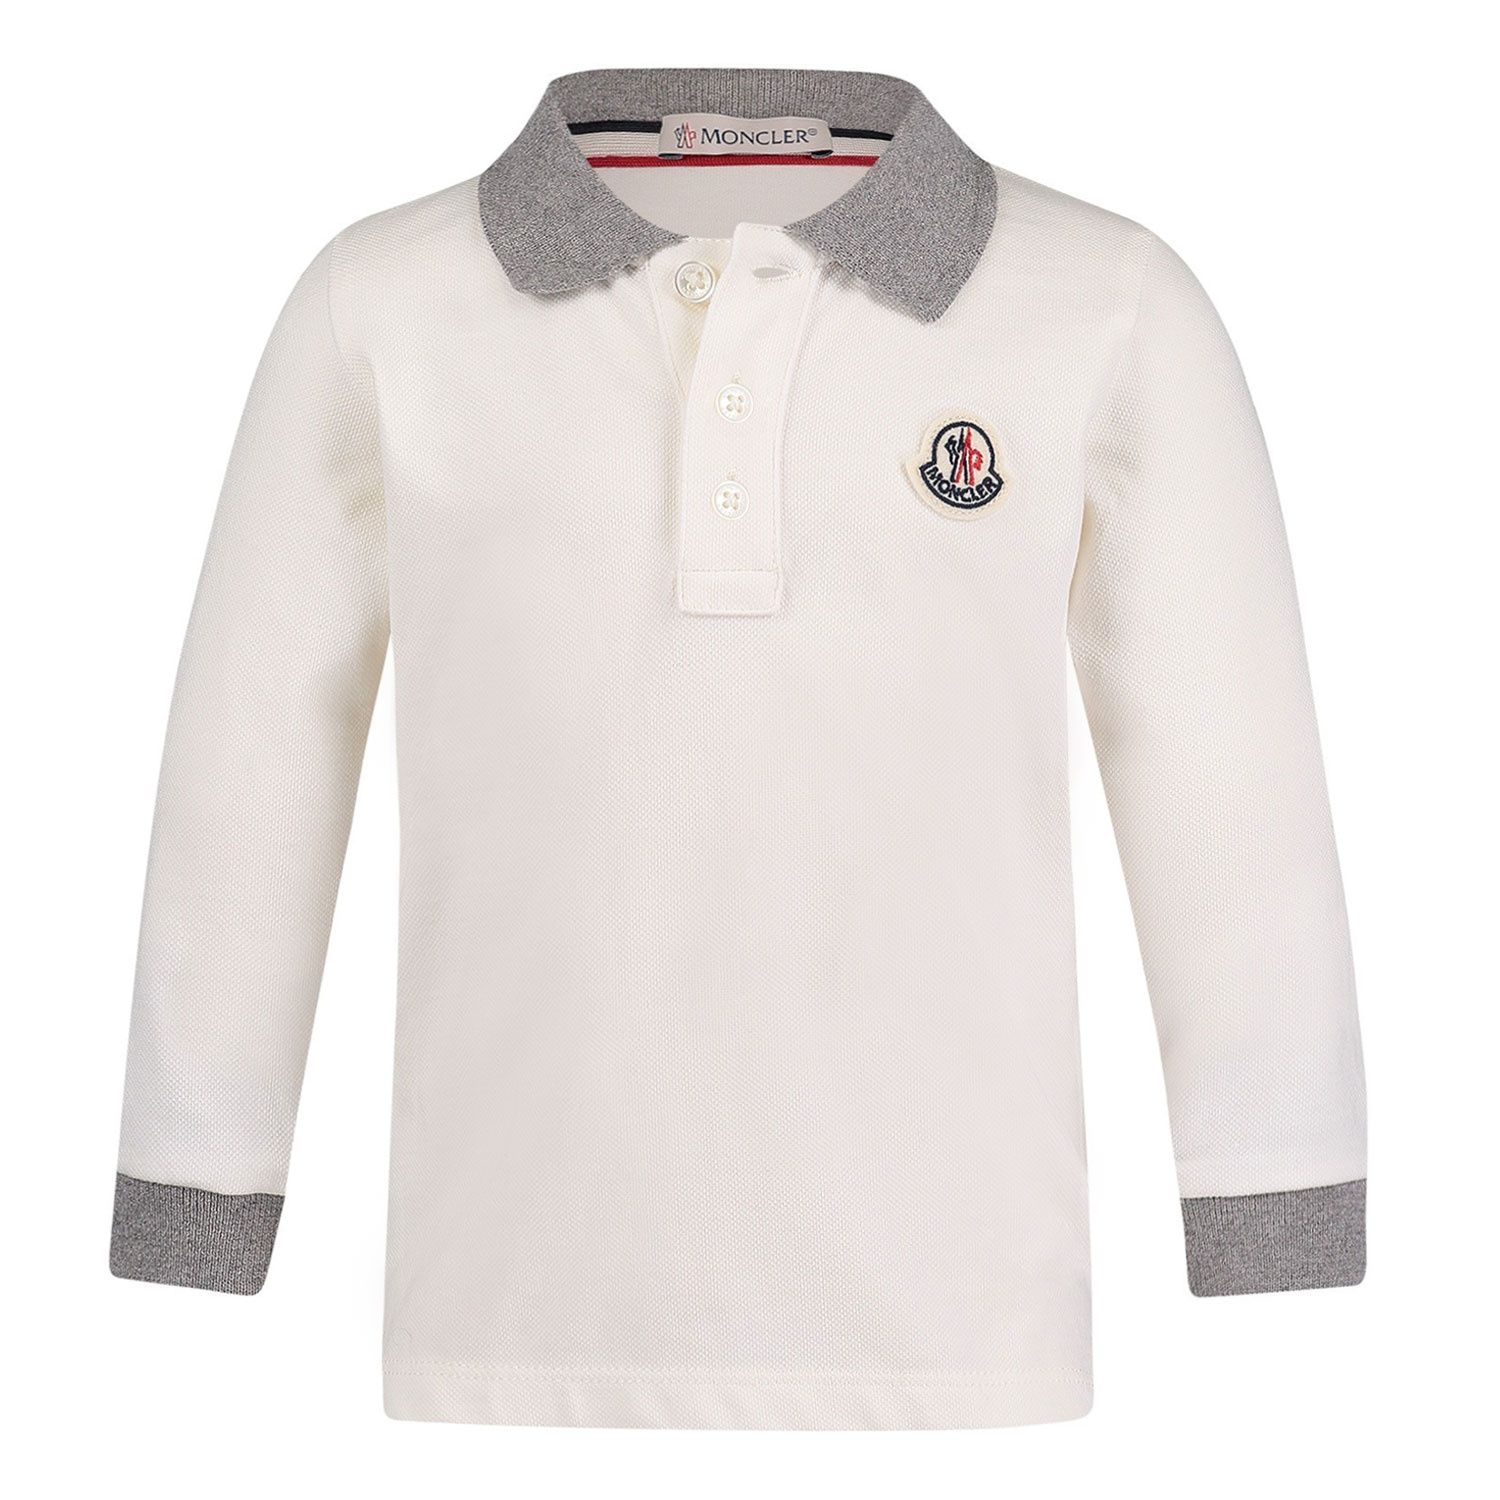 Picture of Moncler 8B70520 baby poloshirt off white